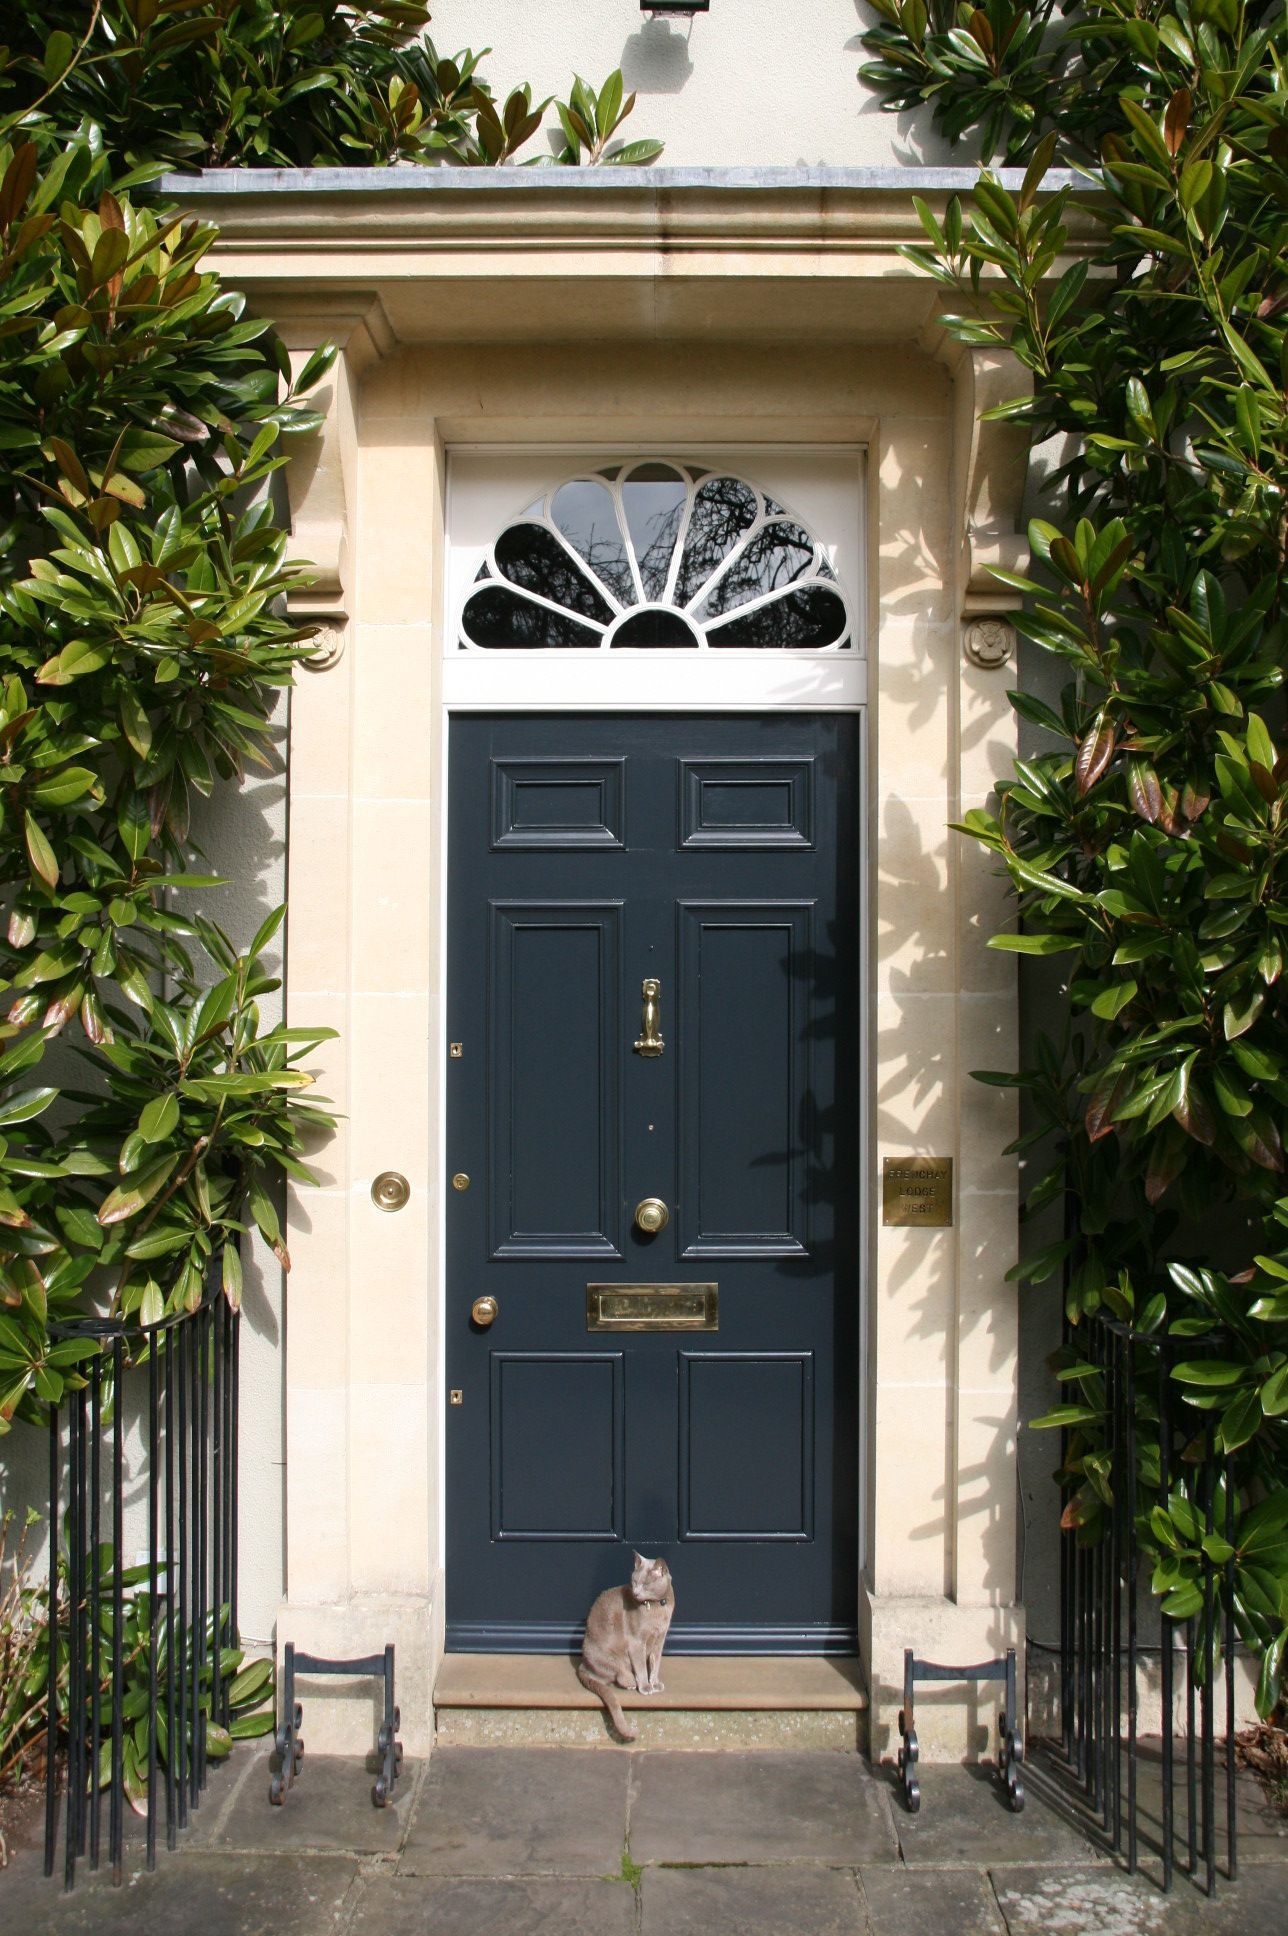 Genial Farrow U0026 Ball Best Exterior Door Colour Gallery: Winning Entry! Clare  Winsor   UK Railings No 31 Exterior Eggshell